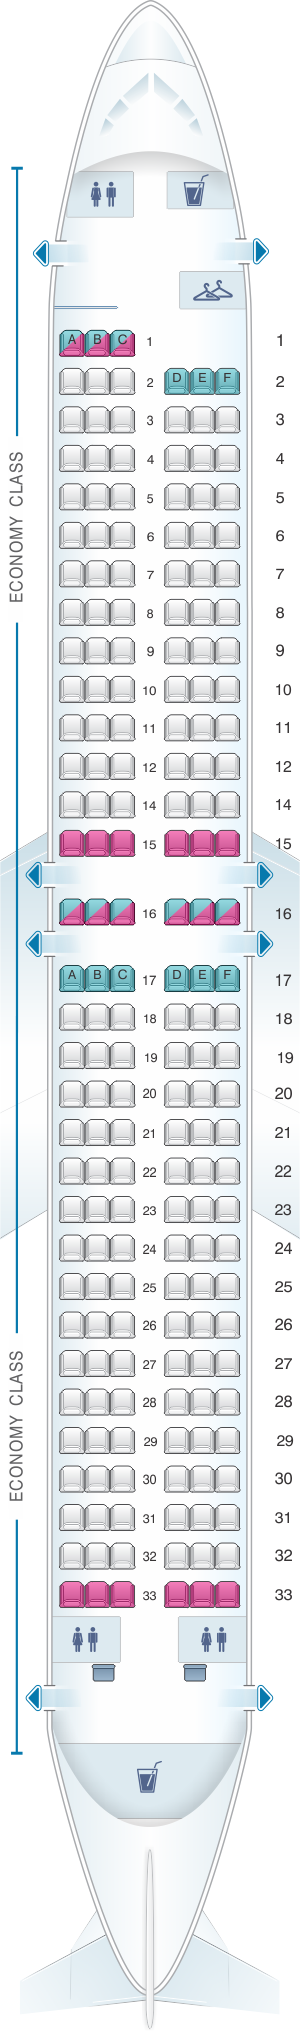 Seat map for Corendon Airlines Boeing B737 MAX 8